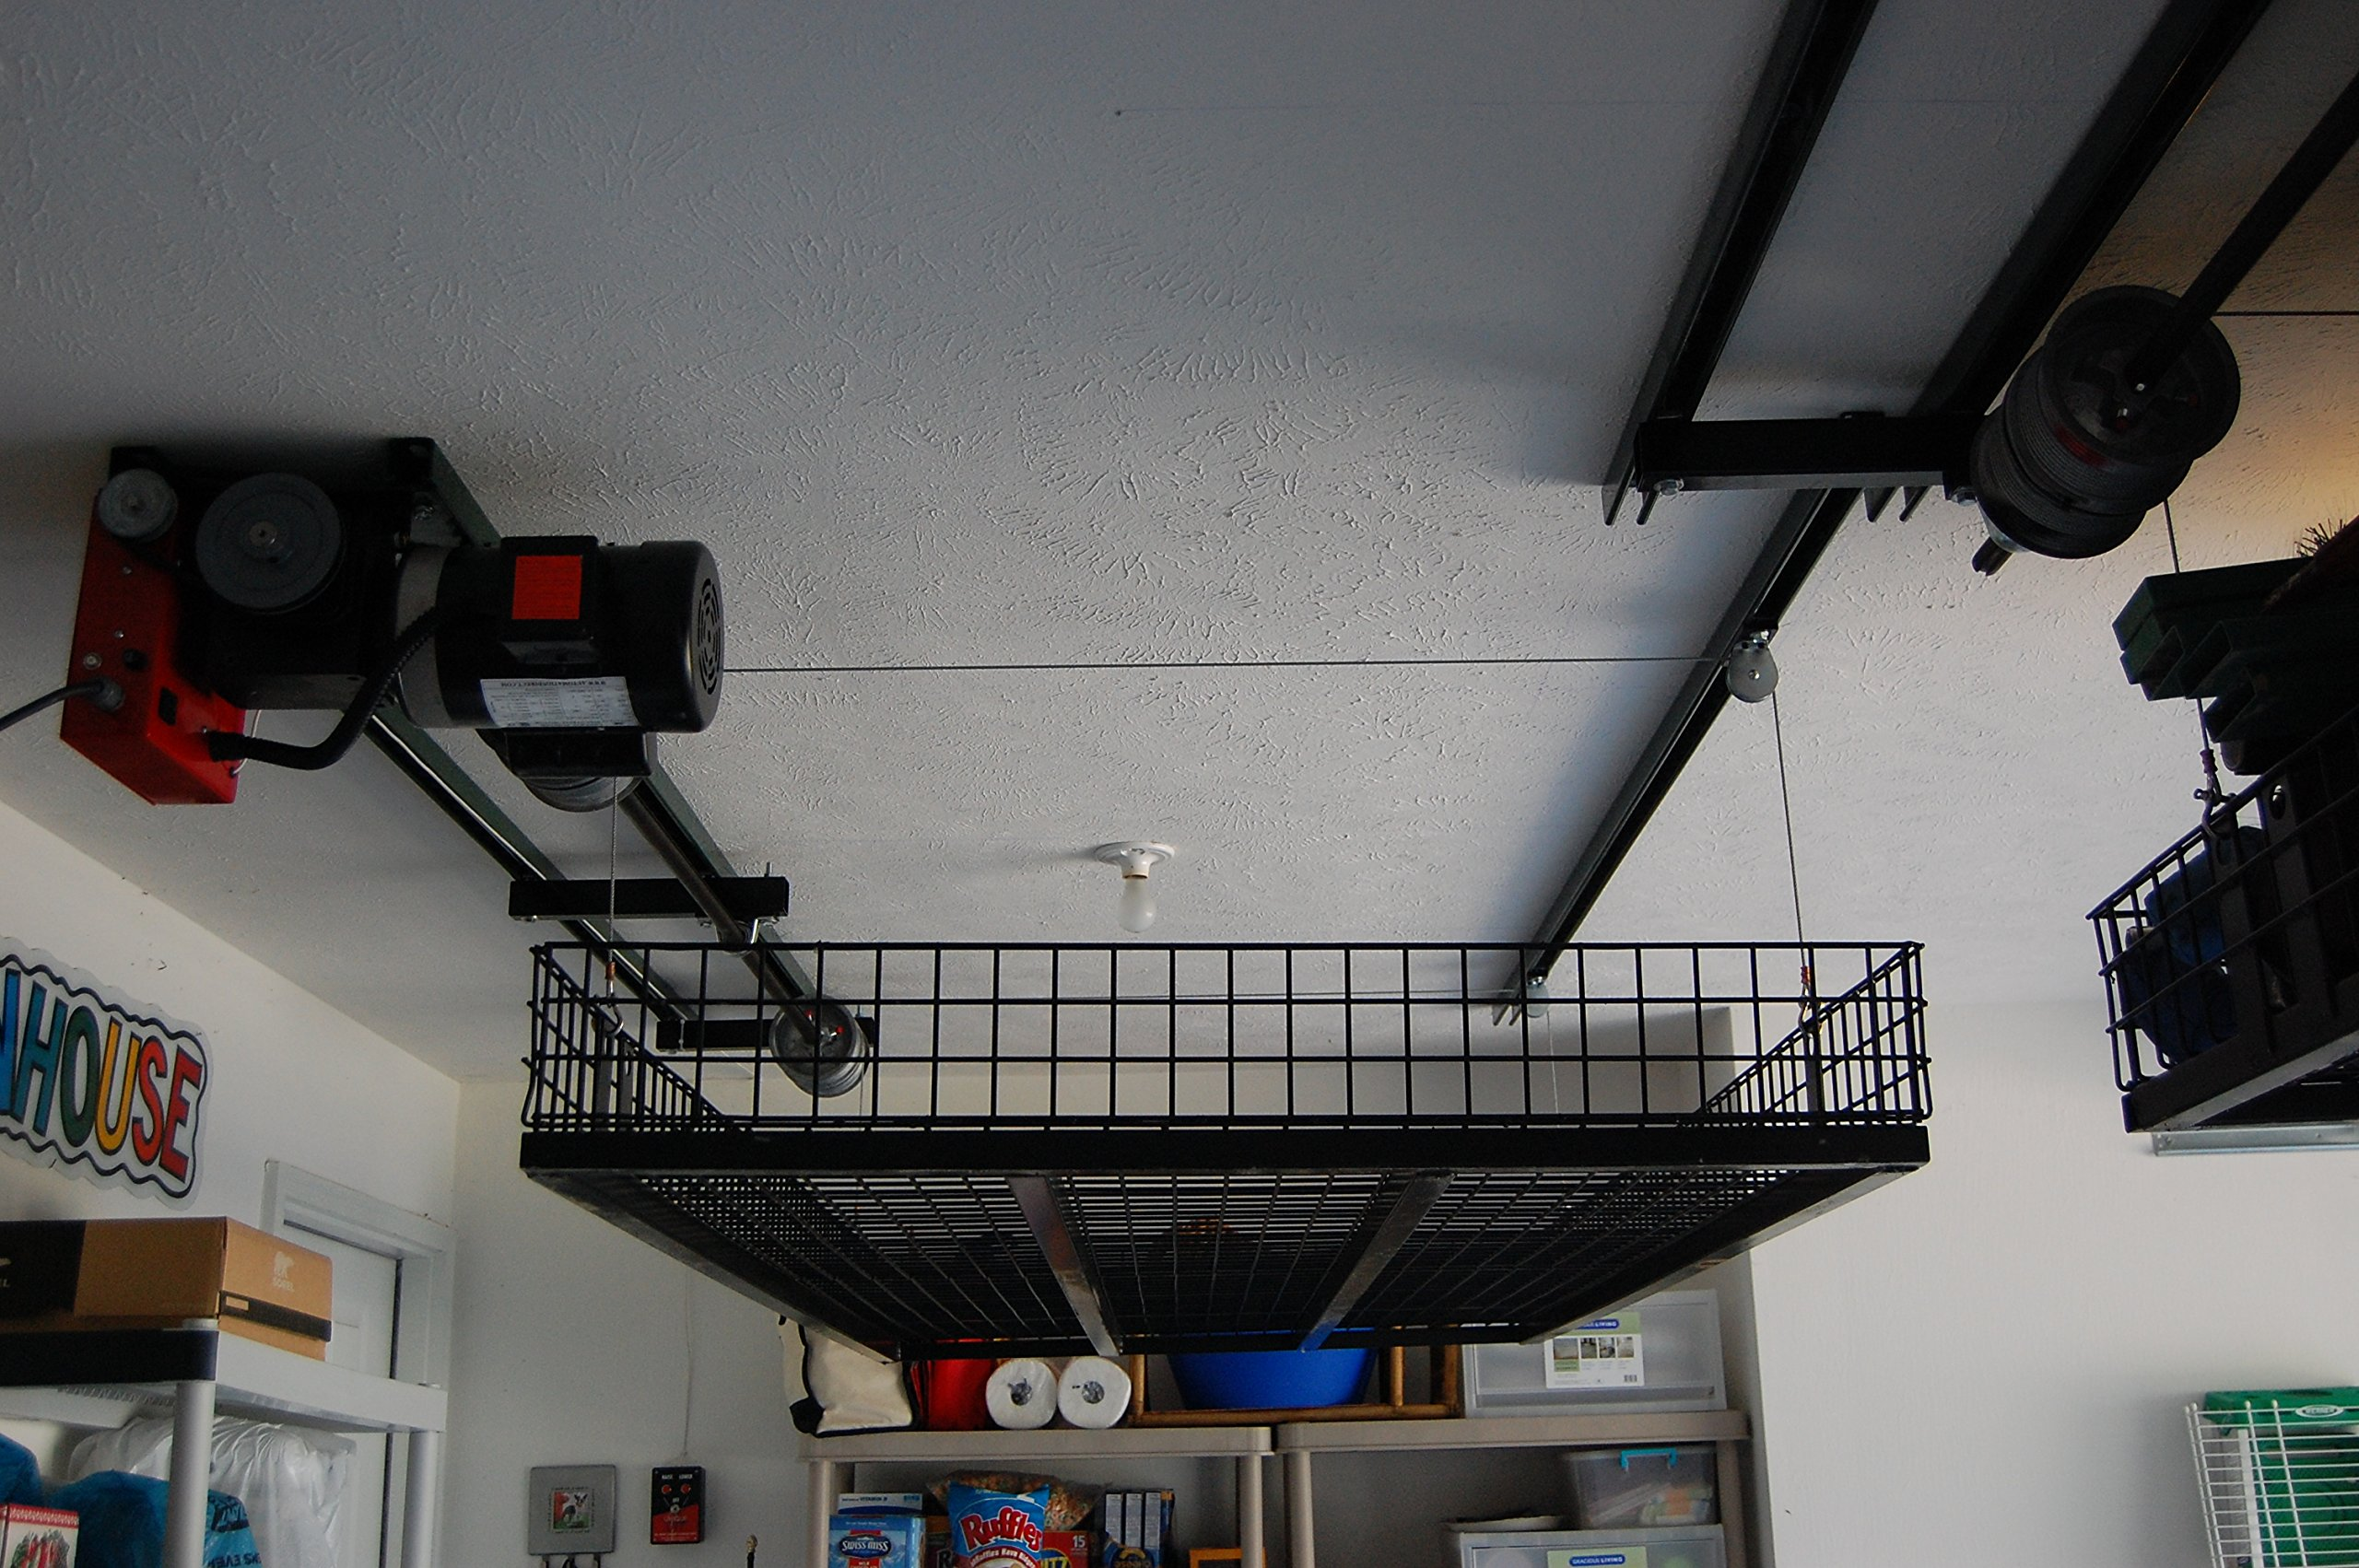 Ceiling Storage Lift Raises 500 Pounds of Your Items to Ceiling of Garage, Huge Space Saver, No Ladder Needed, Raises to 16 Feet, Powered by Strong Electric Motor, Durable Steel Construction